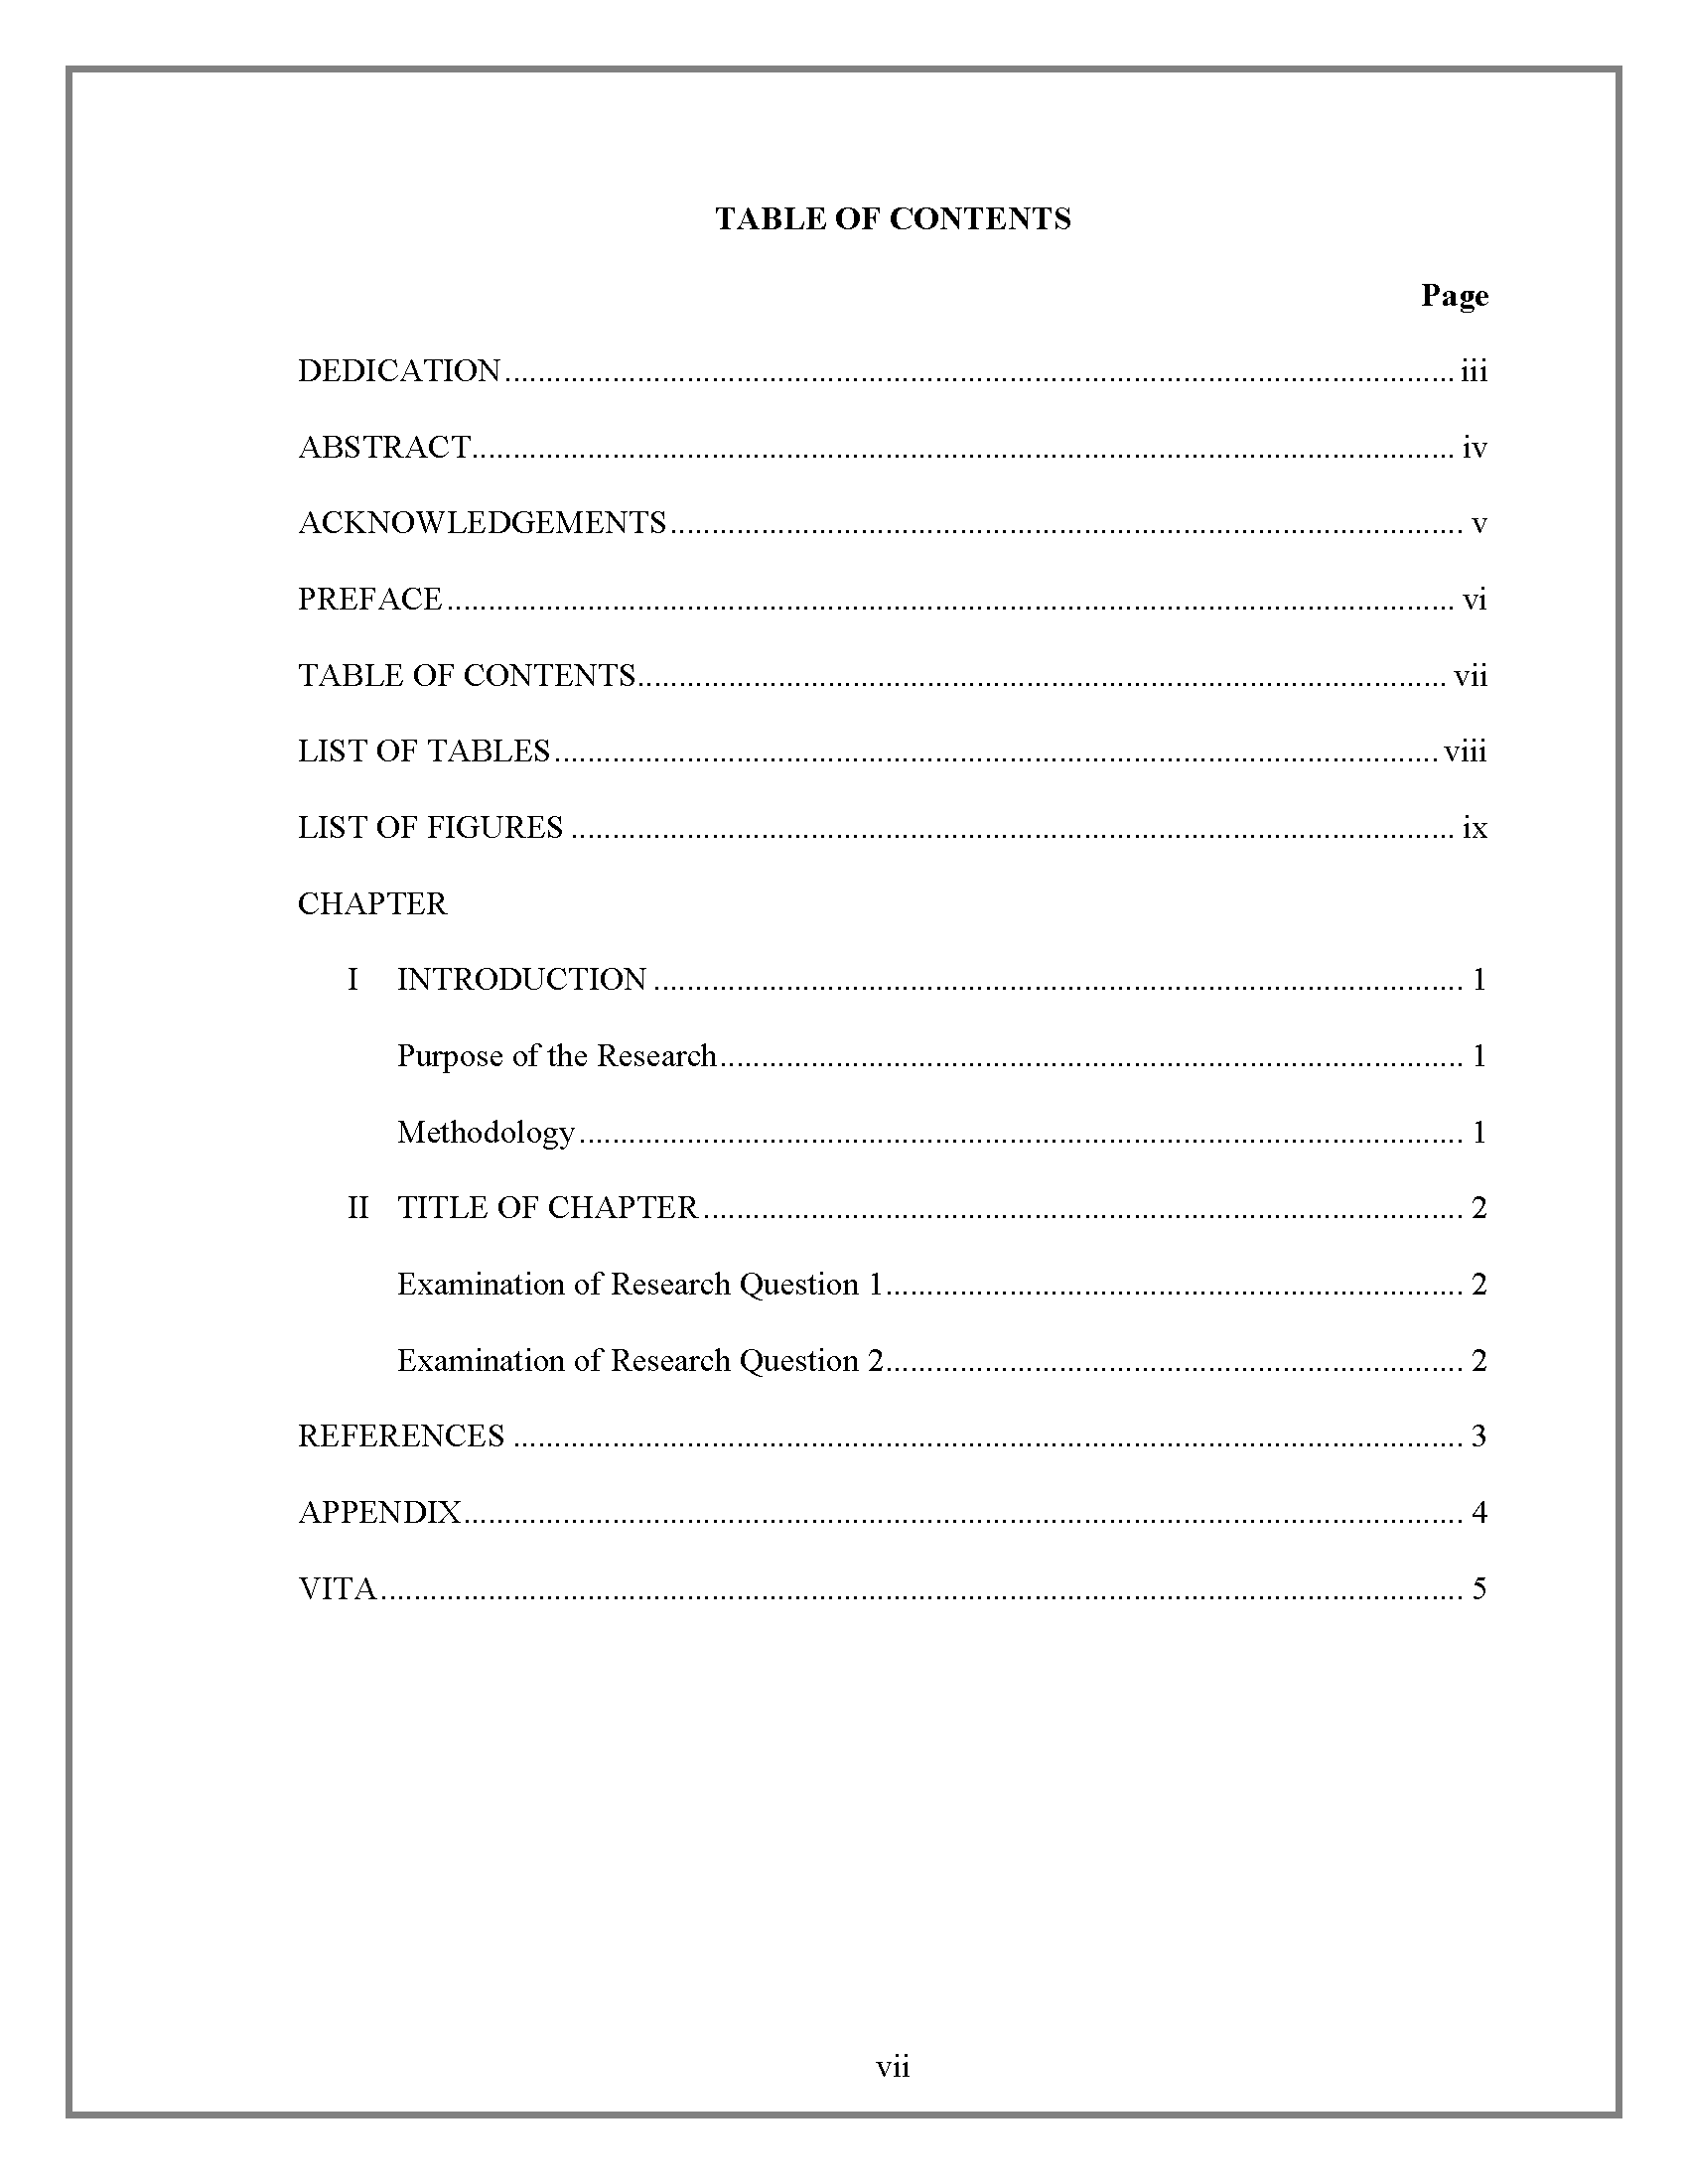 example of table of contents for report